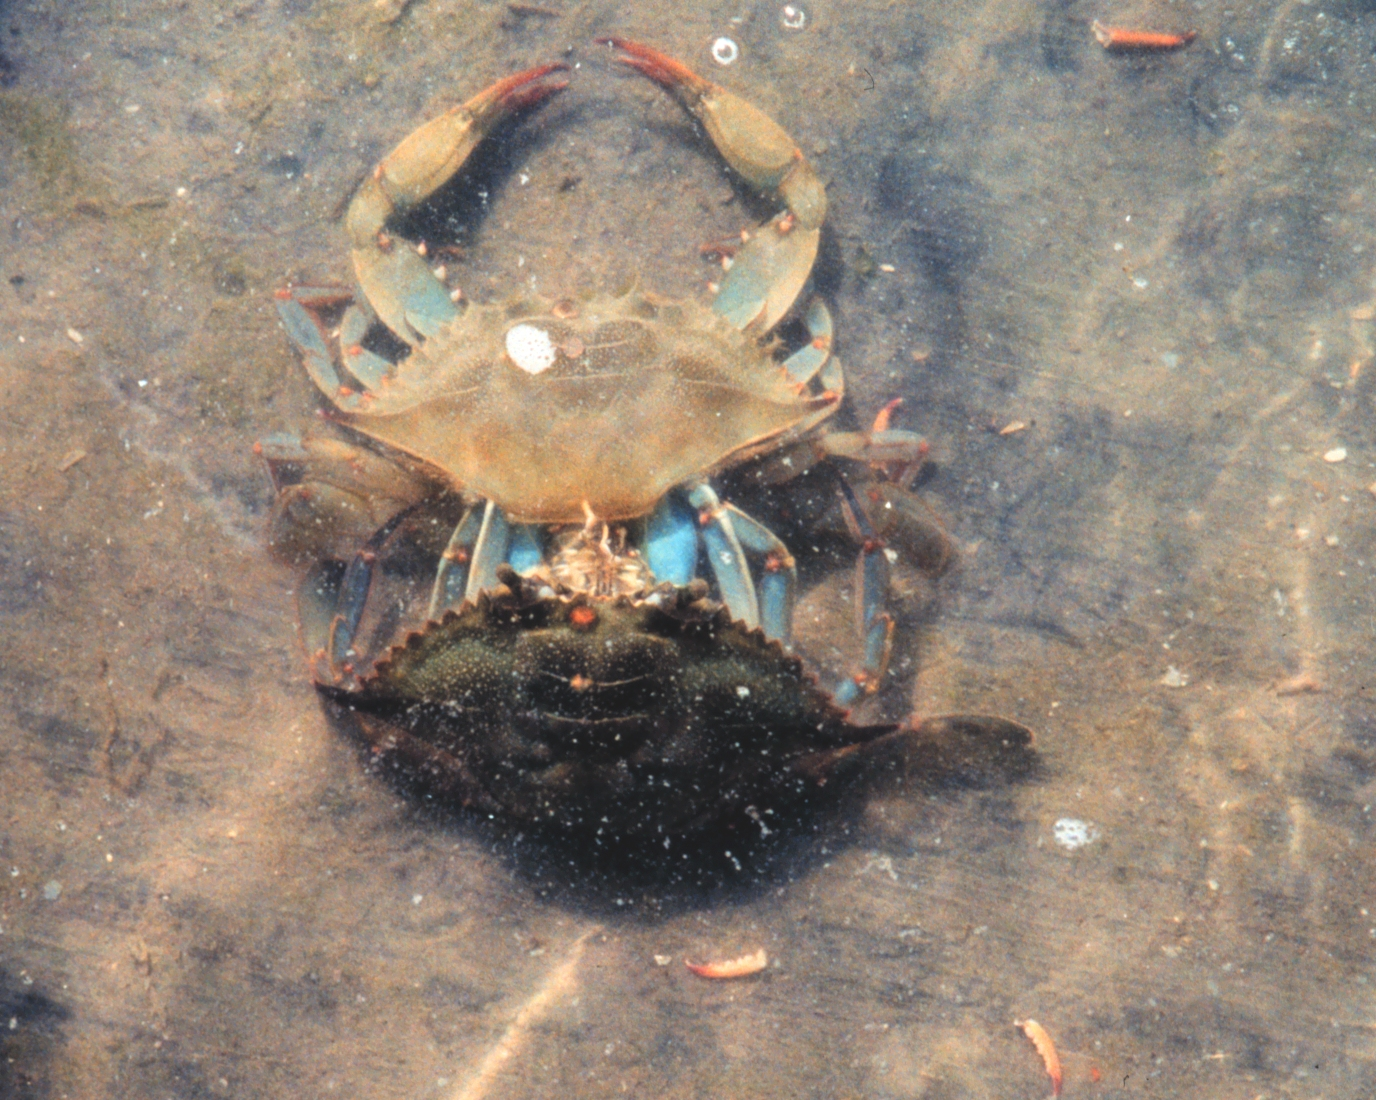 Blue crab for bait from fishin franks for Blue crab fishing